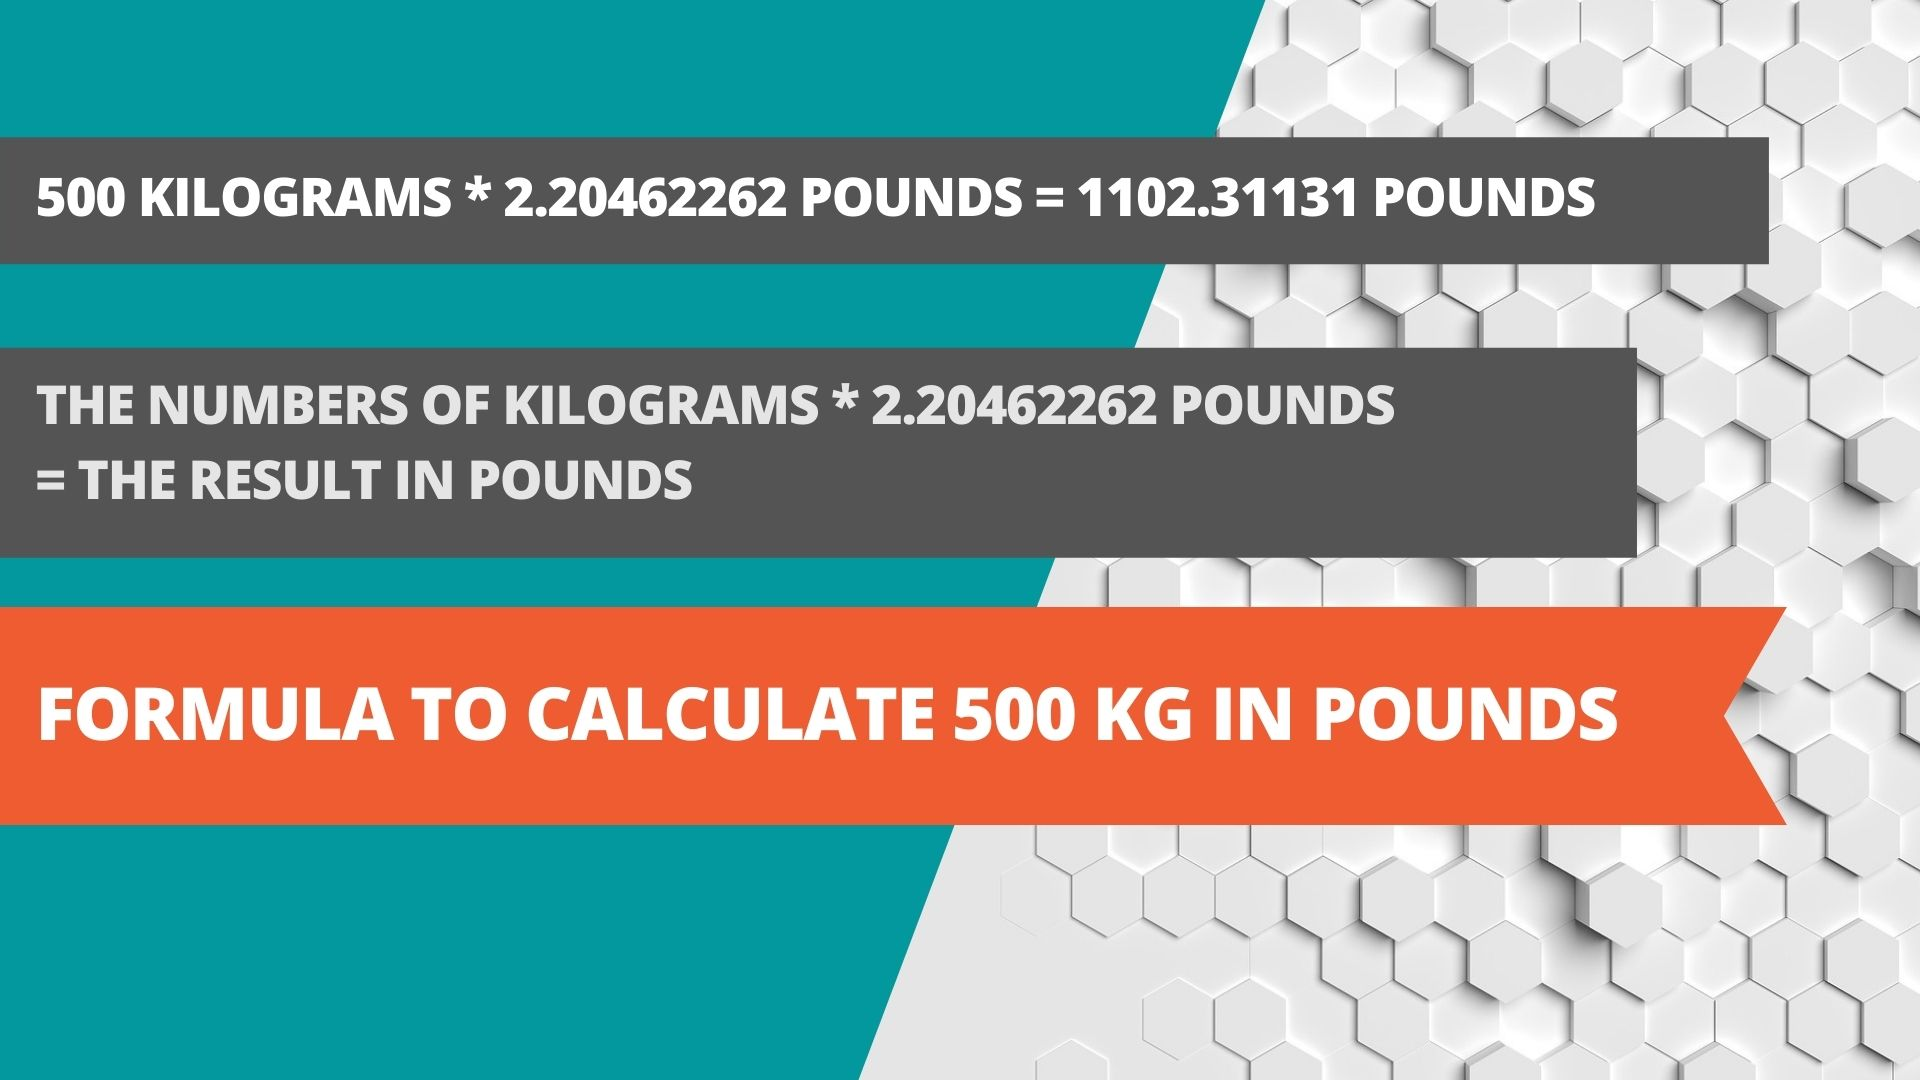 Formula to calculate 500 kg in pounds